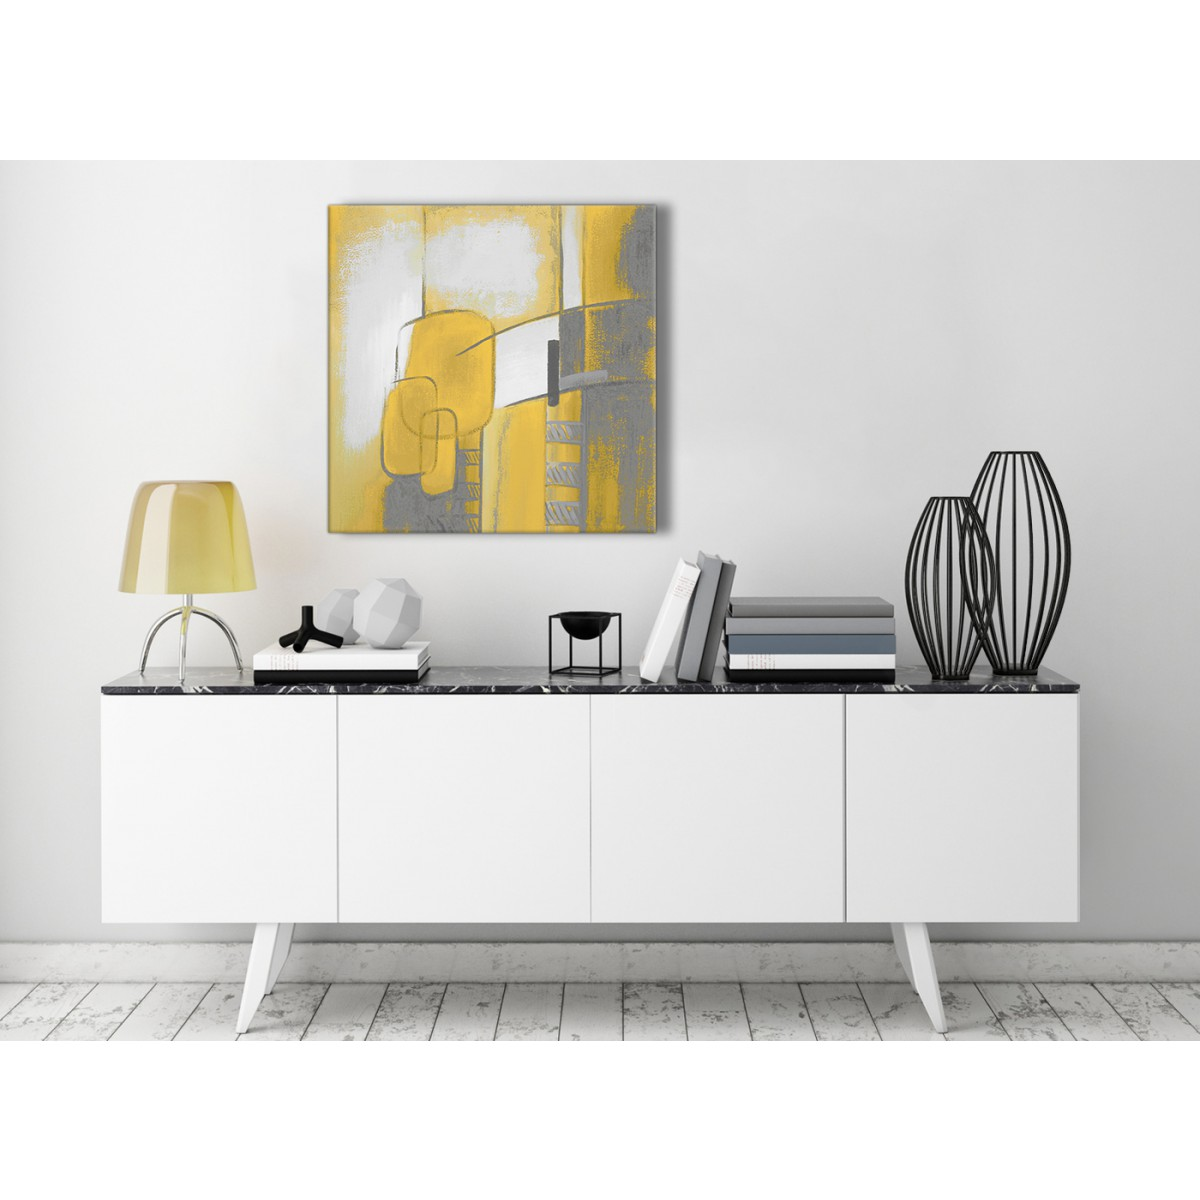 Mustard Kitchen Paint: Mustard Yellow Grey Painting Hallway Canvas Wall Art Decor